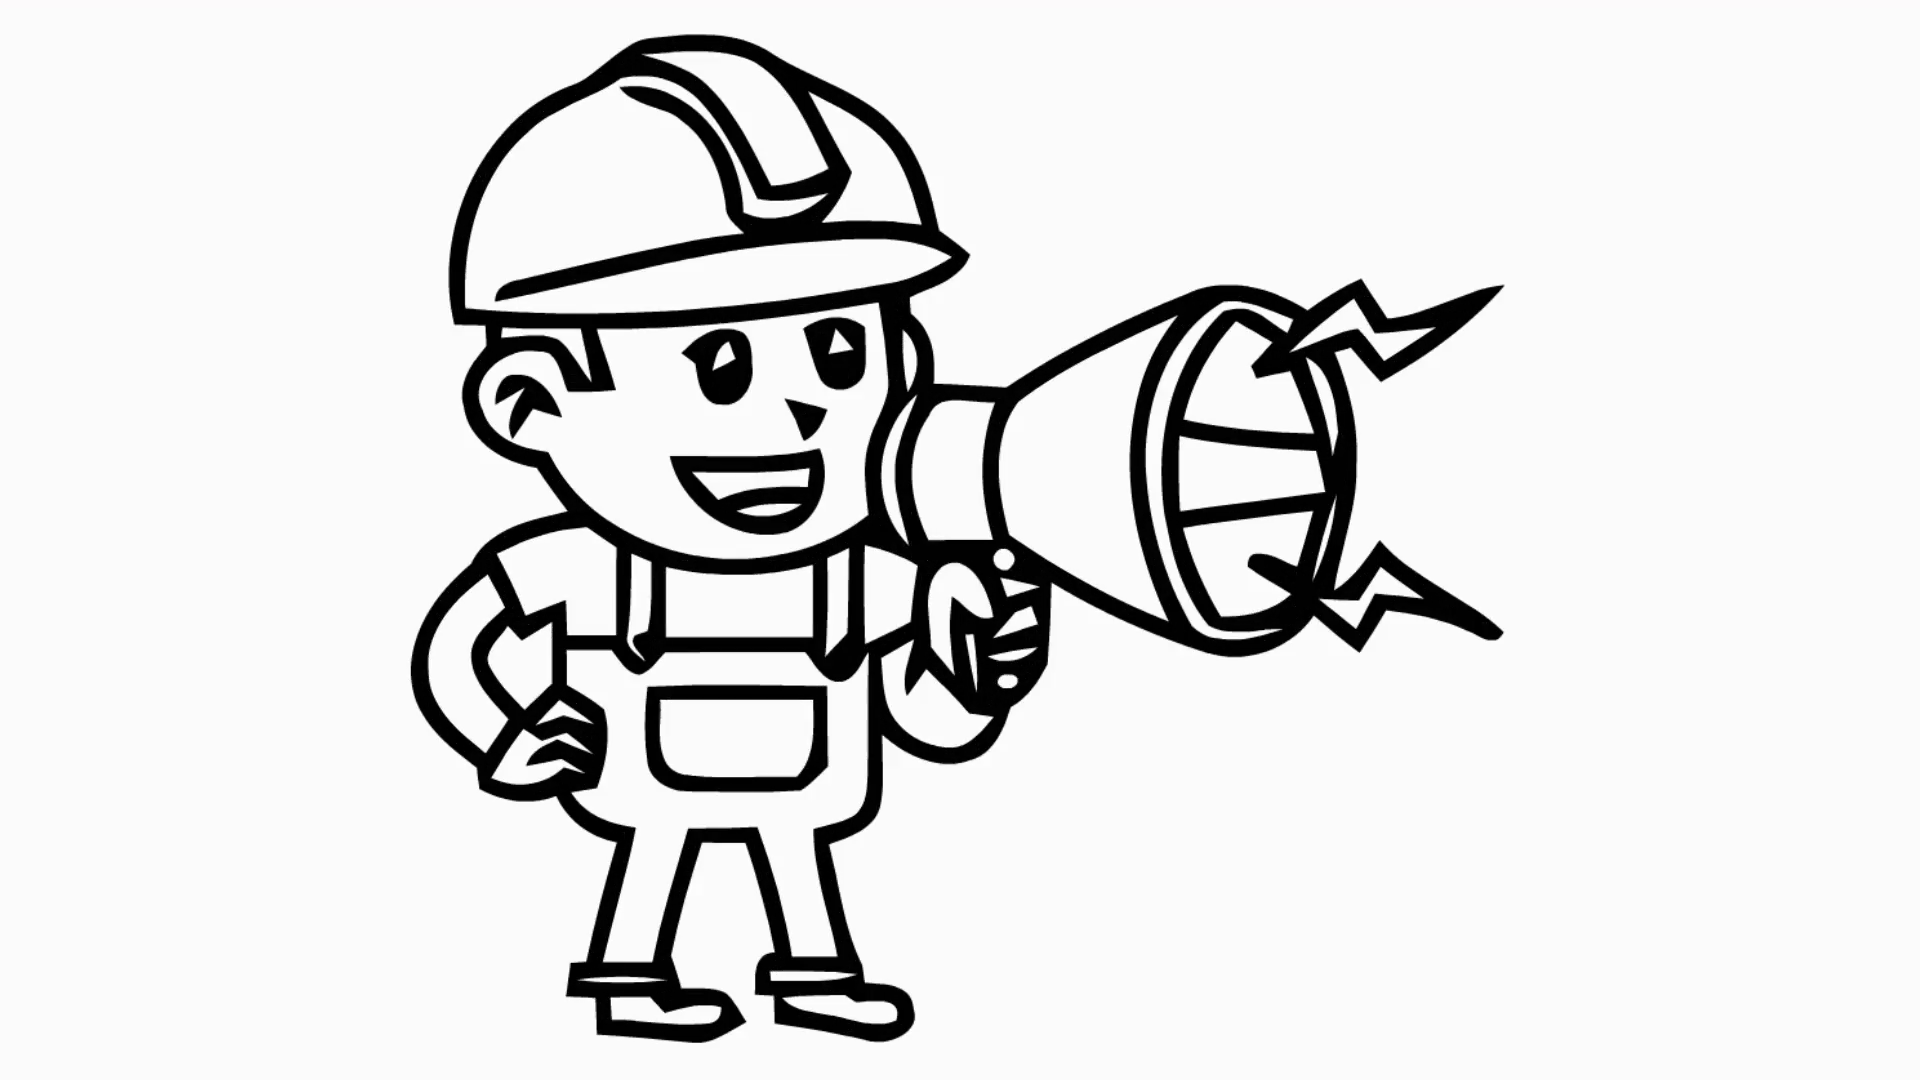 1920x1080 Man With Microphone Cartoon Illustration Hand Drawn Animation